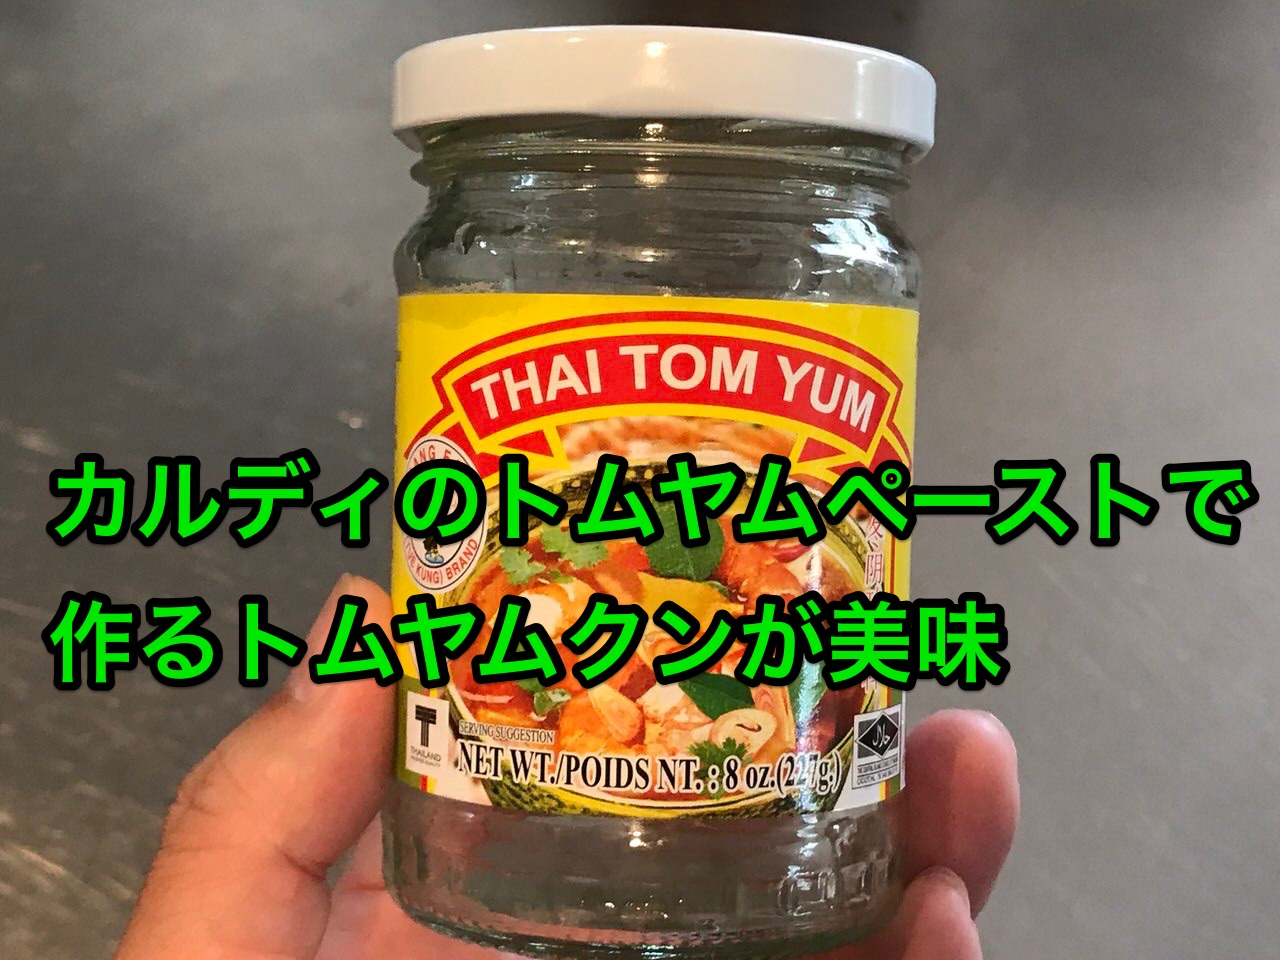 Thai tom yum kaldi 702ttitle